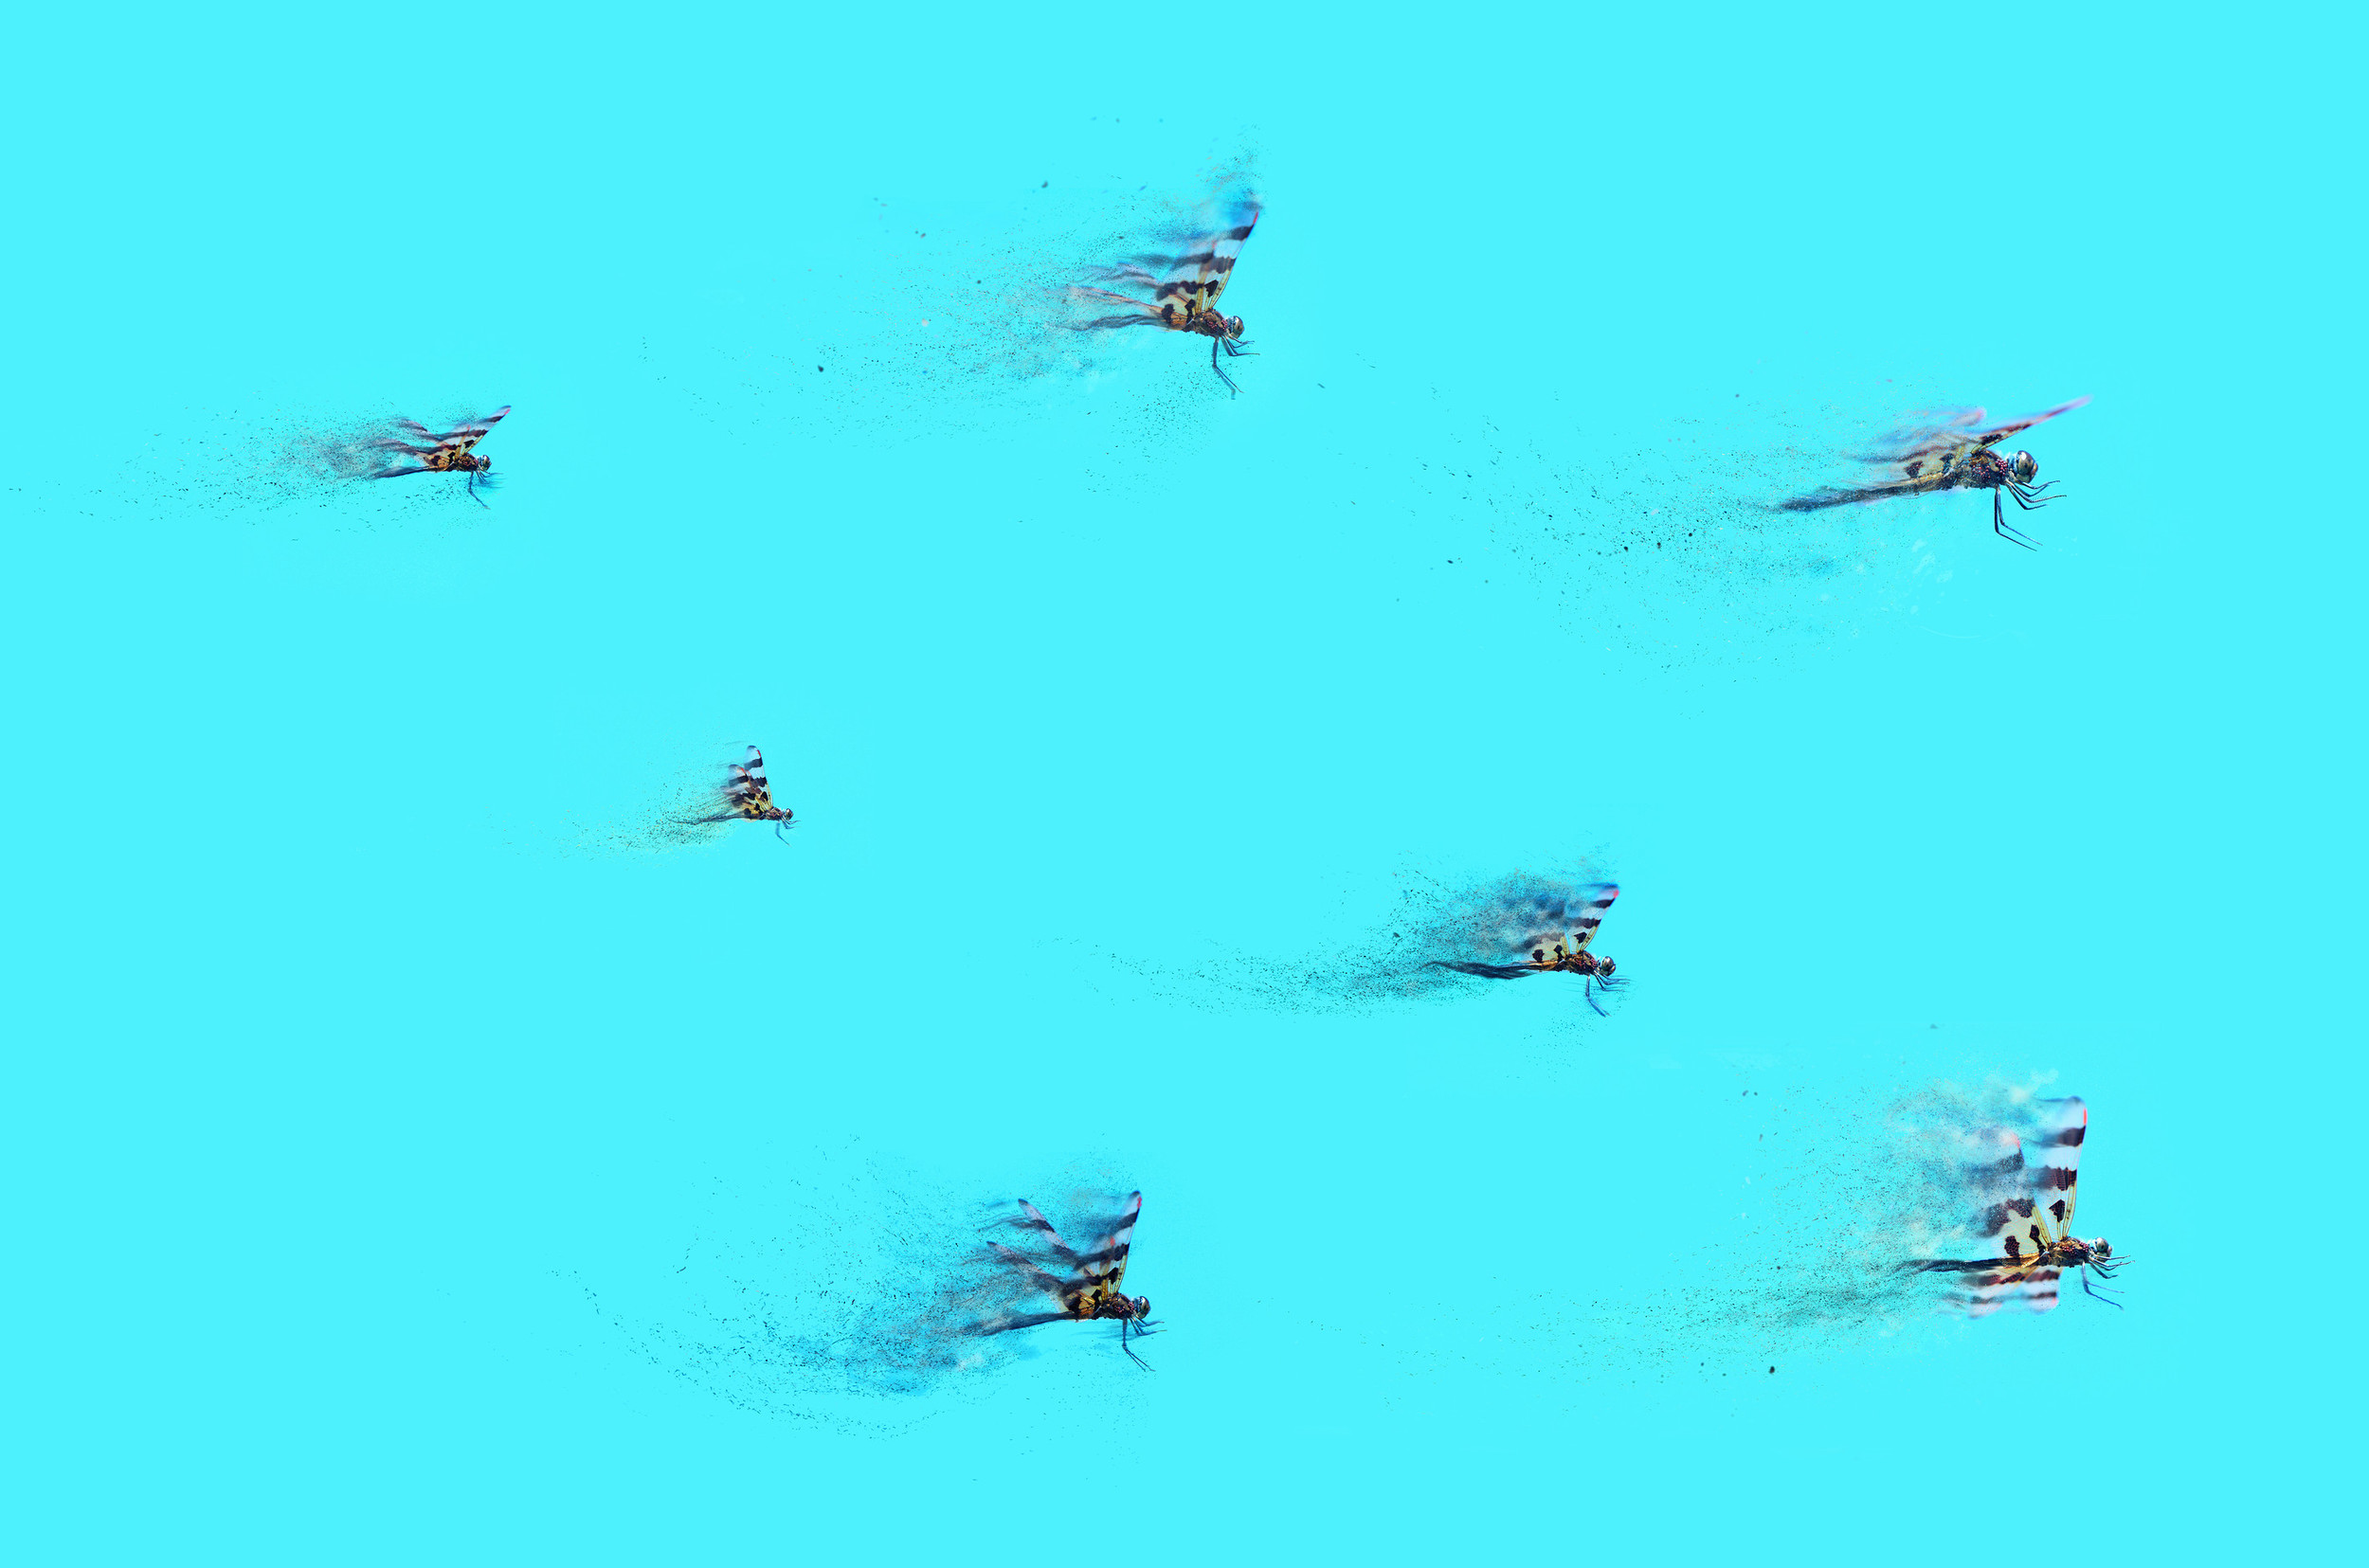 """'Odonata leader to drag squadron, tighten up formation and keep your eyes peeled for bogeys' Digital Photography on Aluminum, 48"""" x 28"""" $795"""